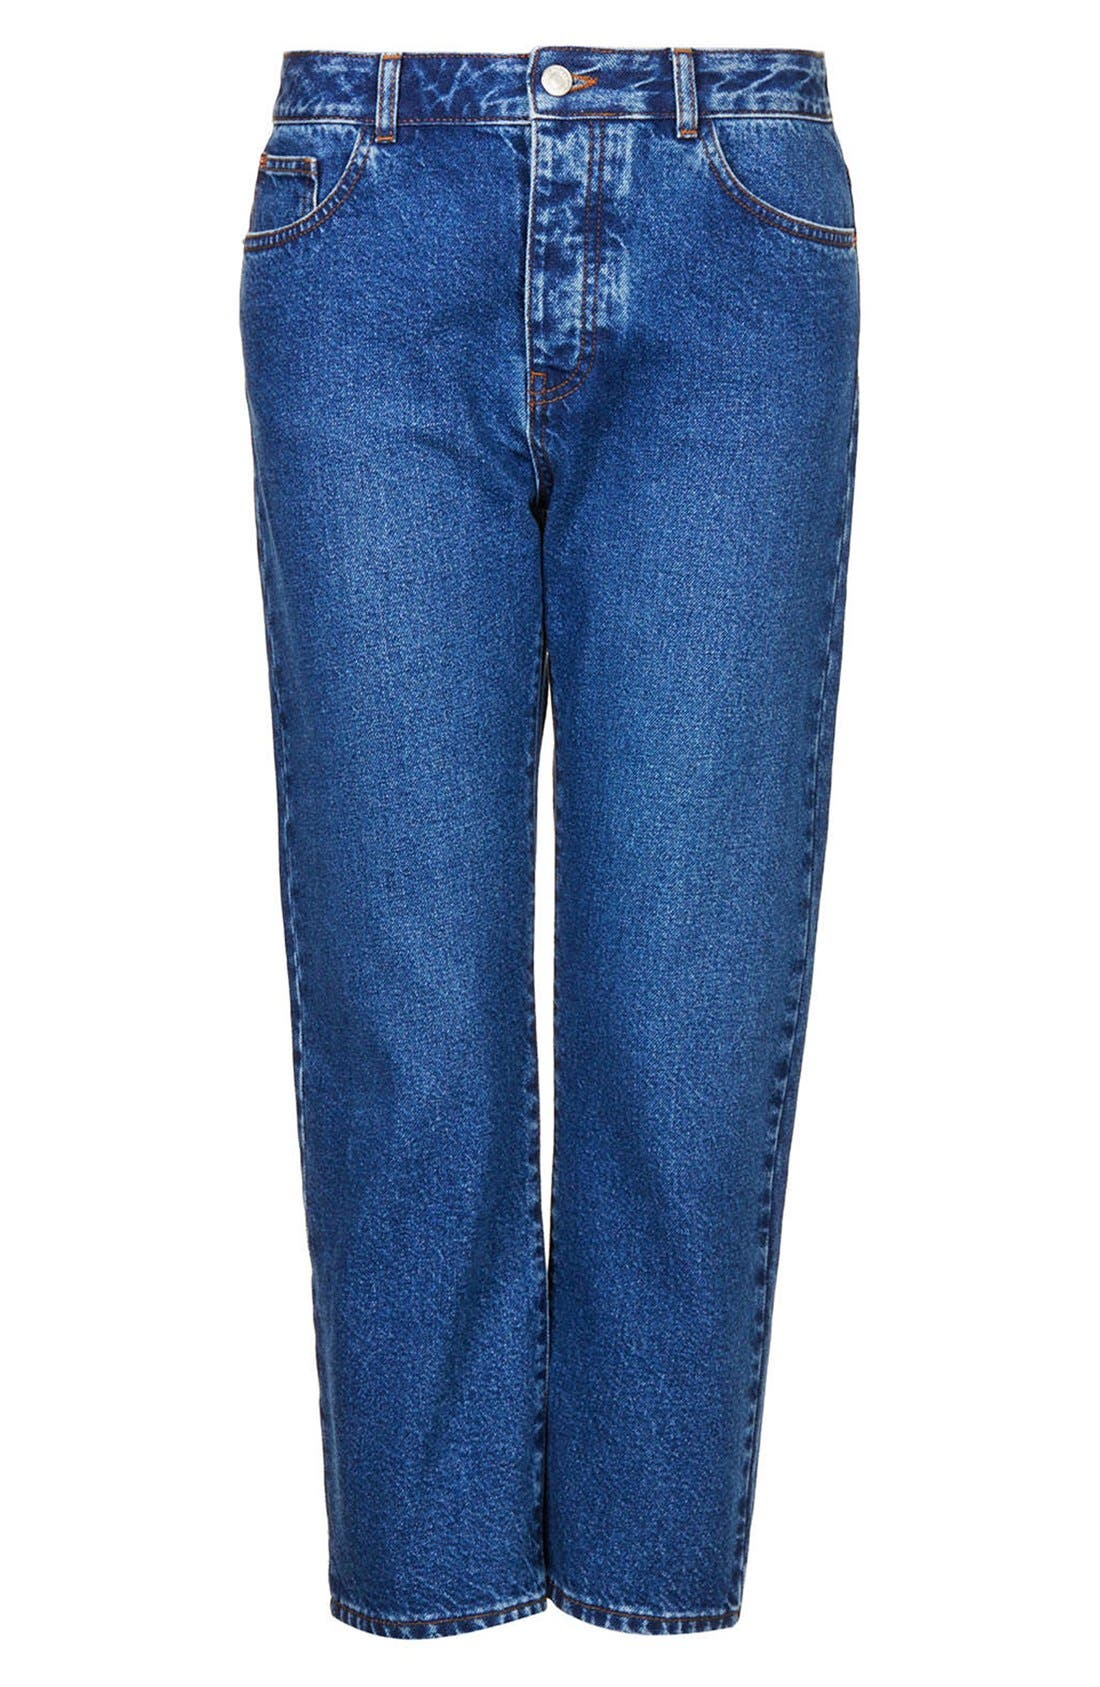 Alternate Image 3  - Topshop Moto Girlfriend Jeans (Blue)